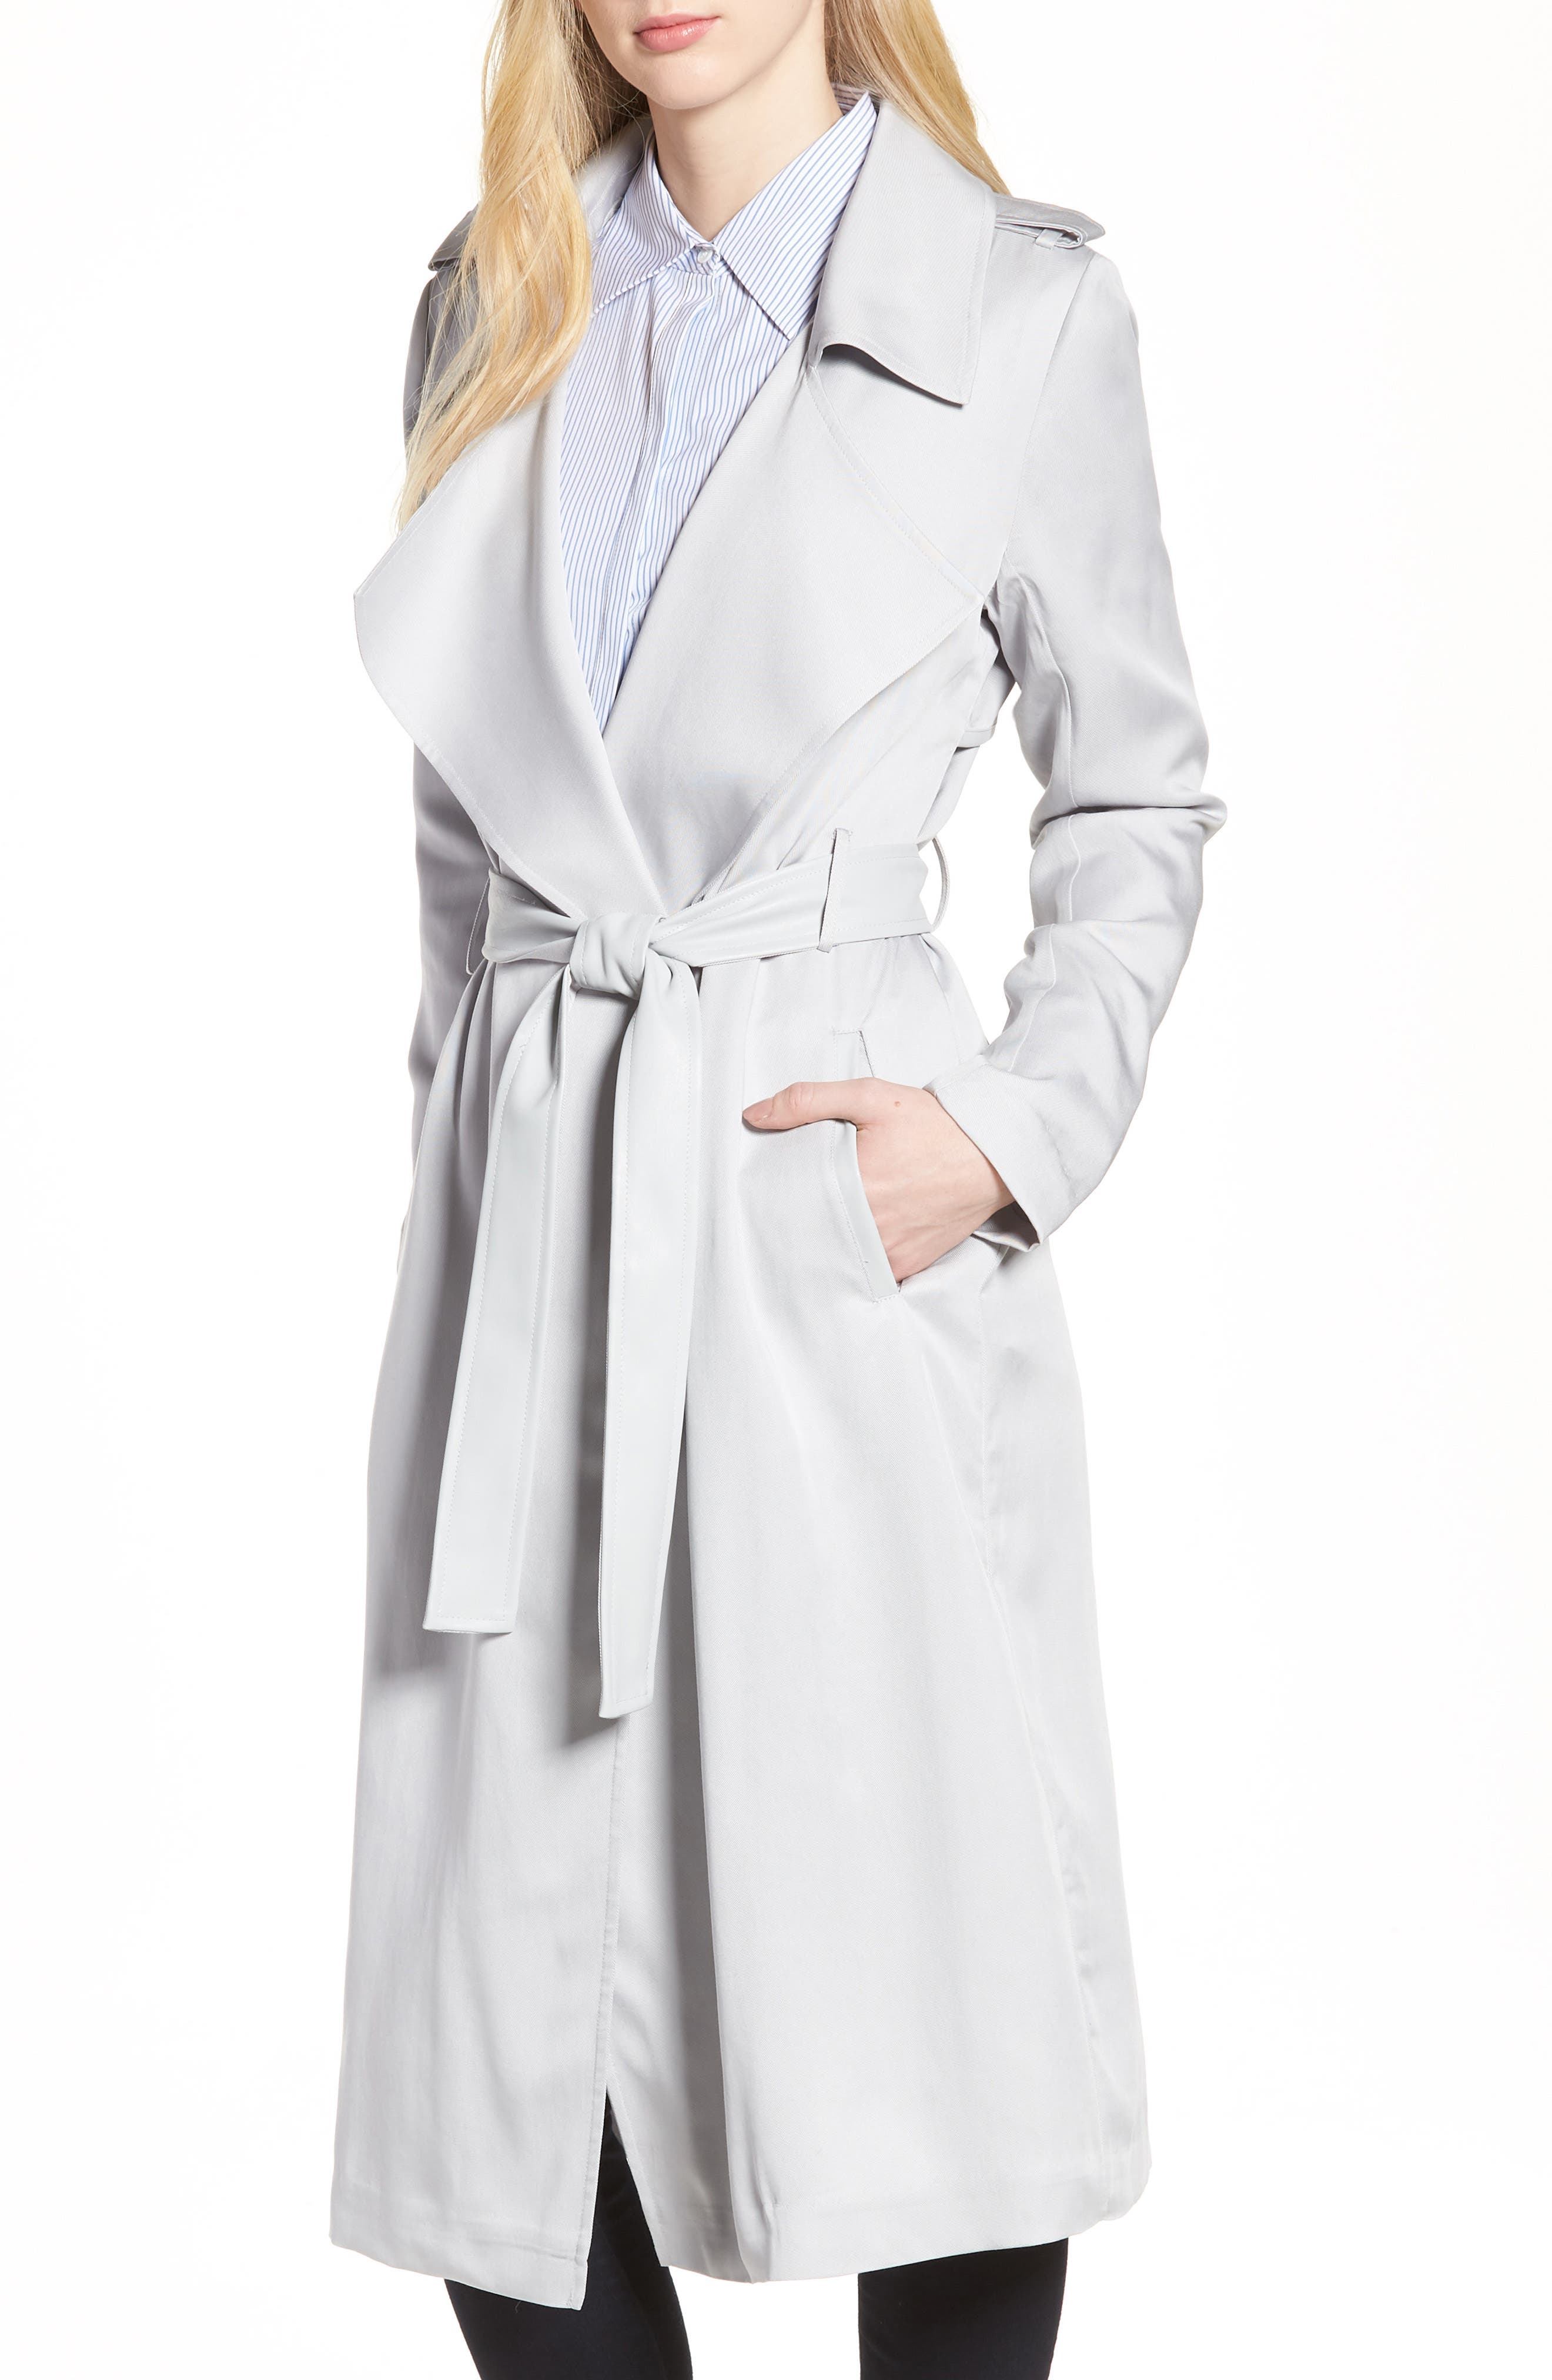 Badgley Mischka Faux Leather Trim Long Trench Coat,                         Main,                         color, 020